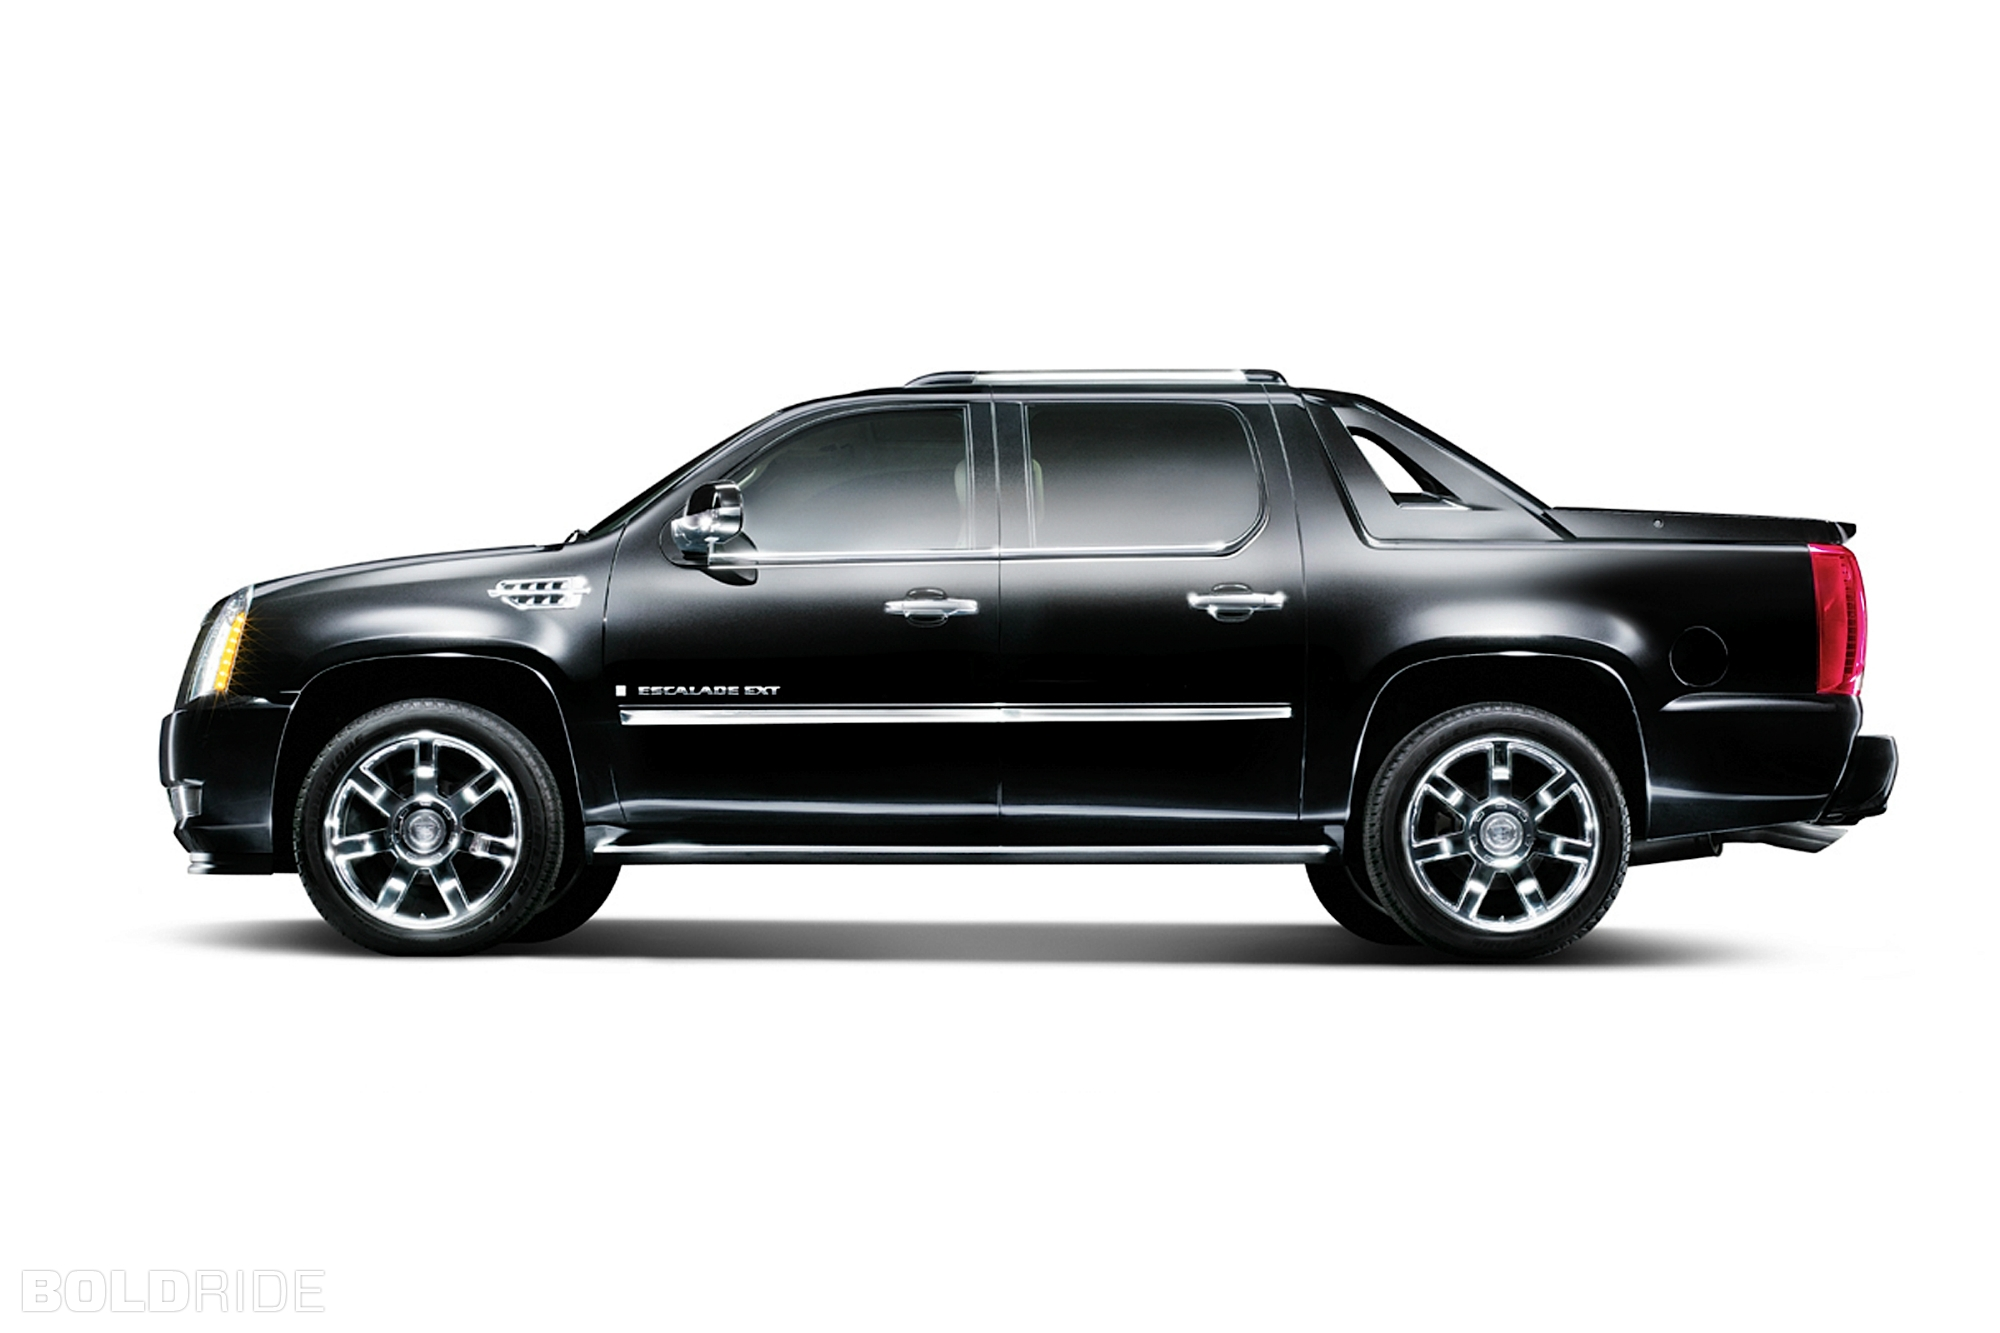 034 additionally Cadillac  pact Coupe Imagined 02 together with Supersize further Escalade in addition DSC 7547. on cadillac